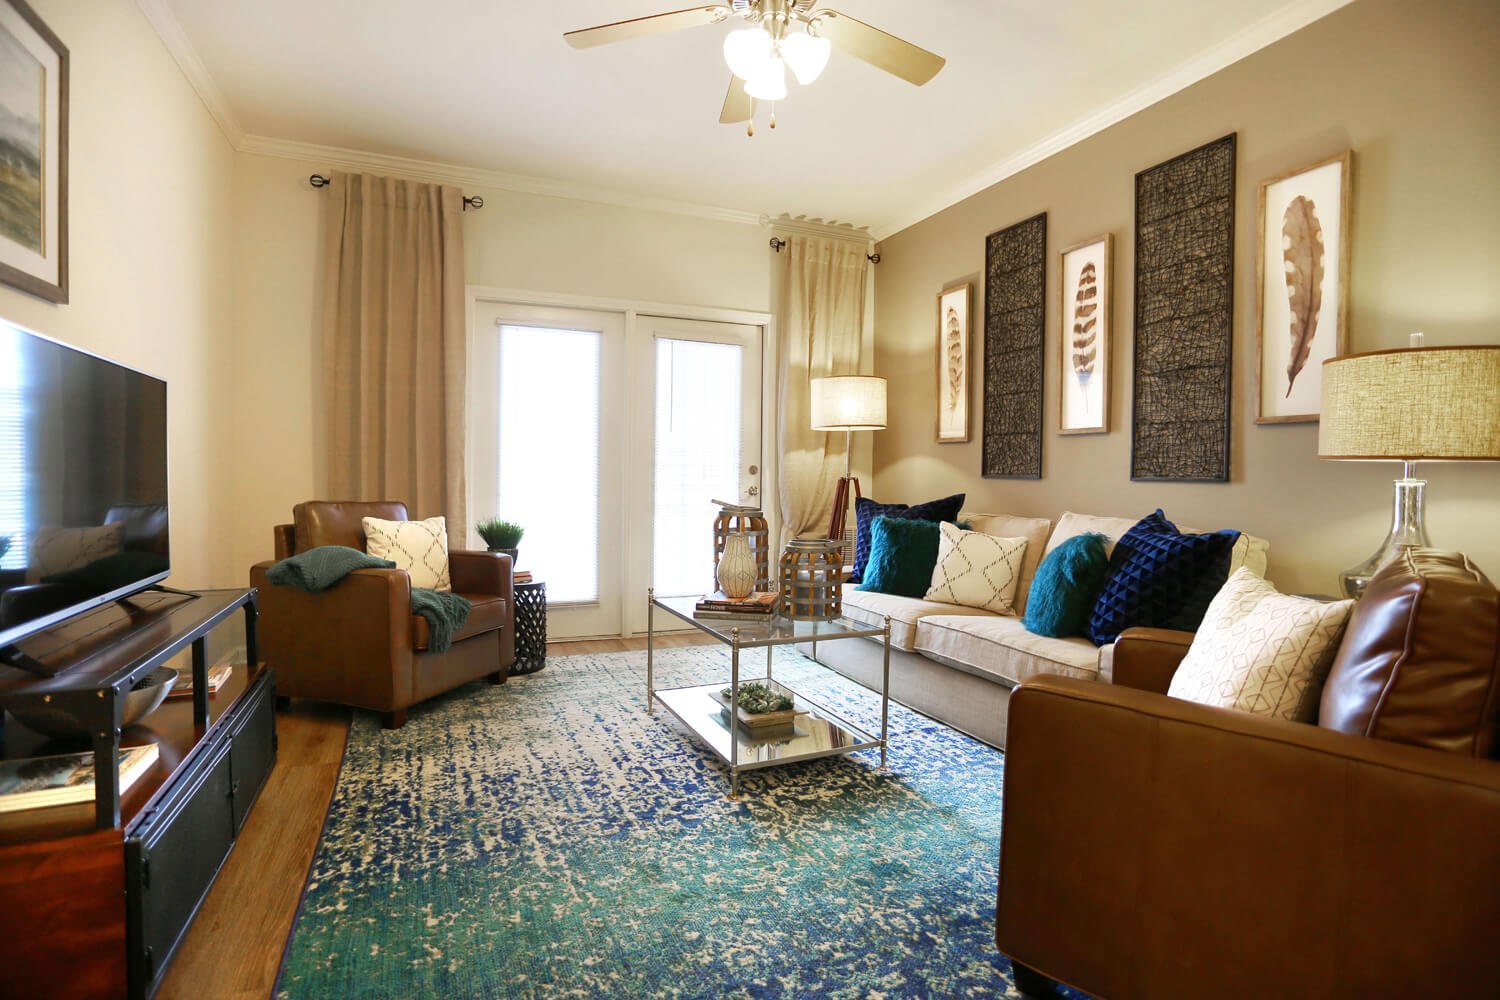 The Morgan Apartments Designed by Foshee Architecture - View of Living Room